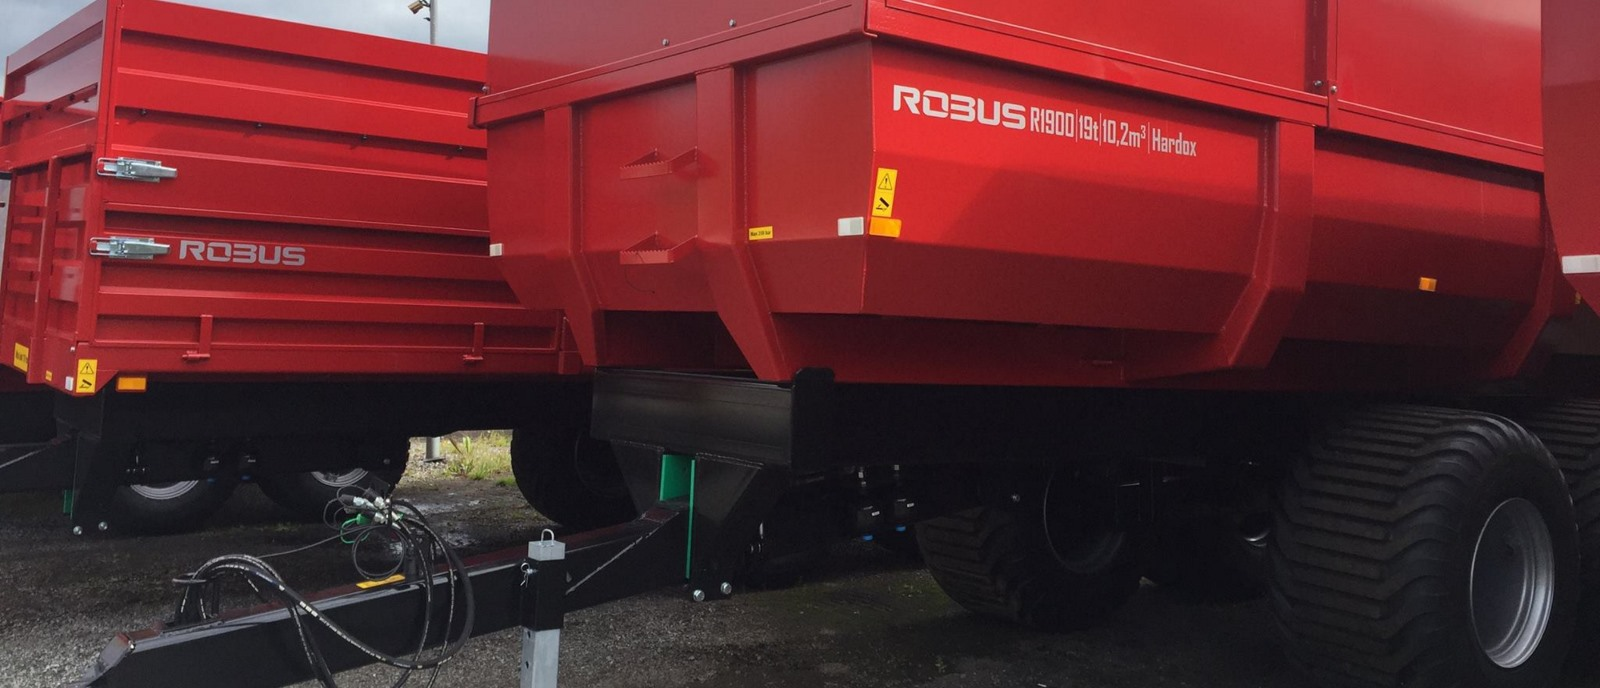 ROBUS trailers